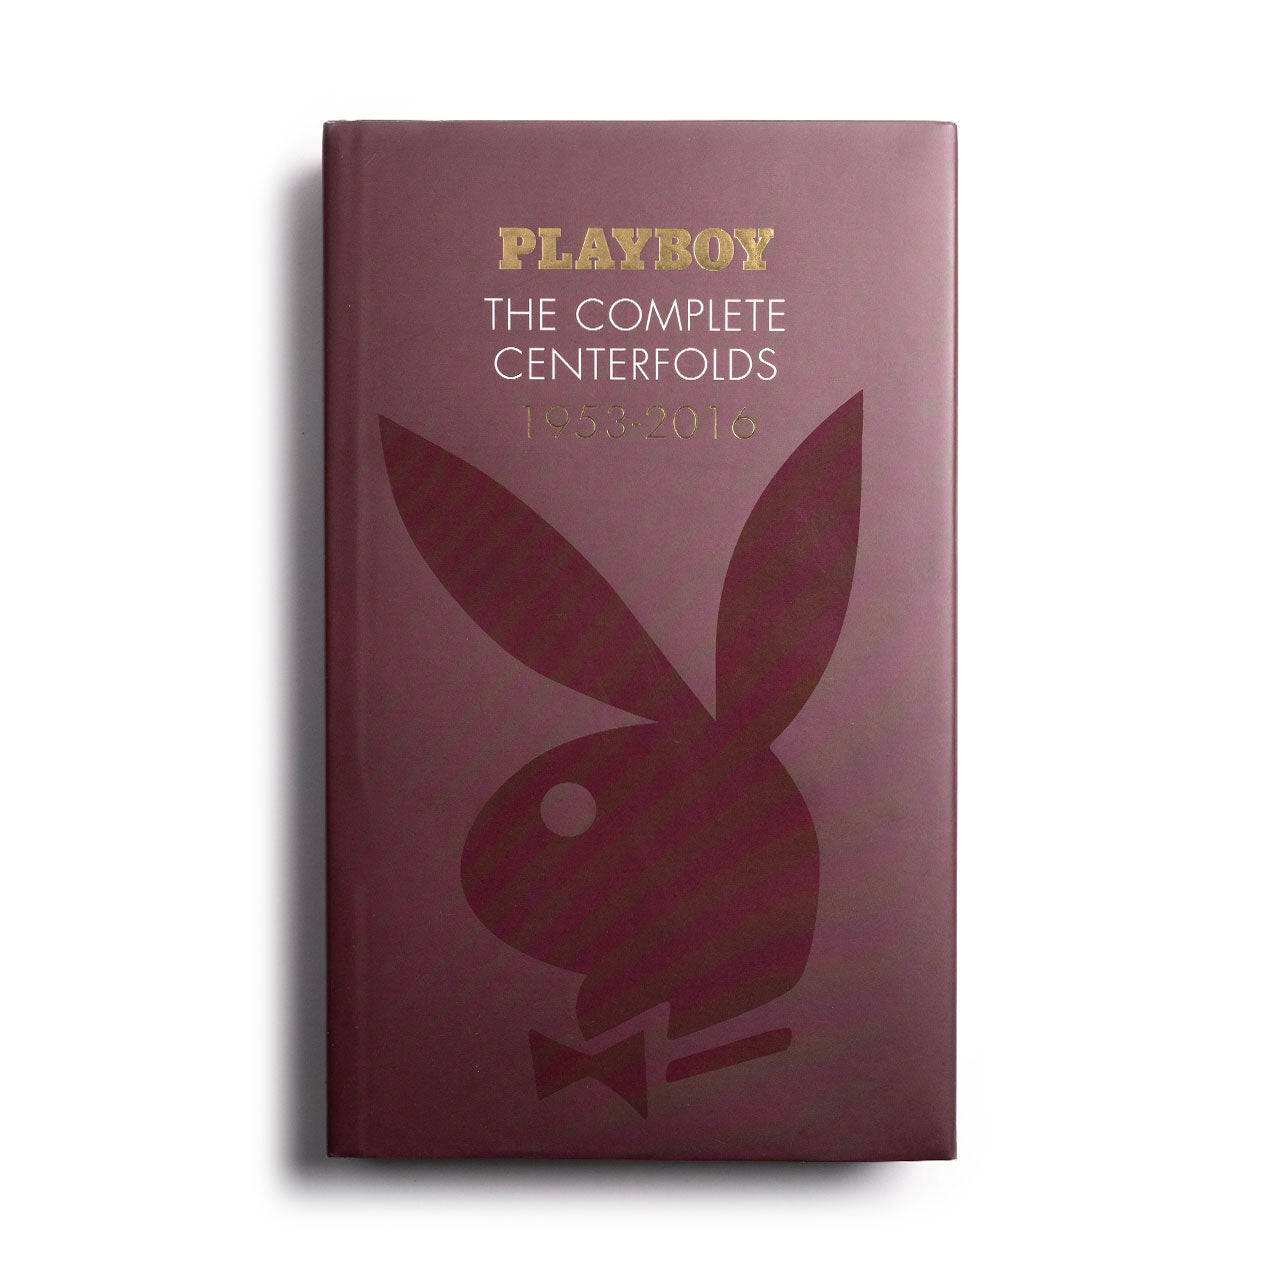 Playboy: The Complete Centerfolds